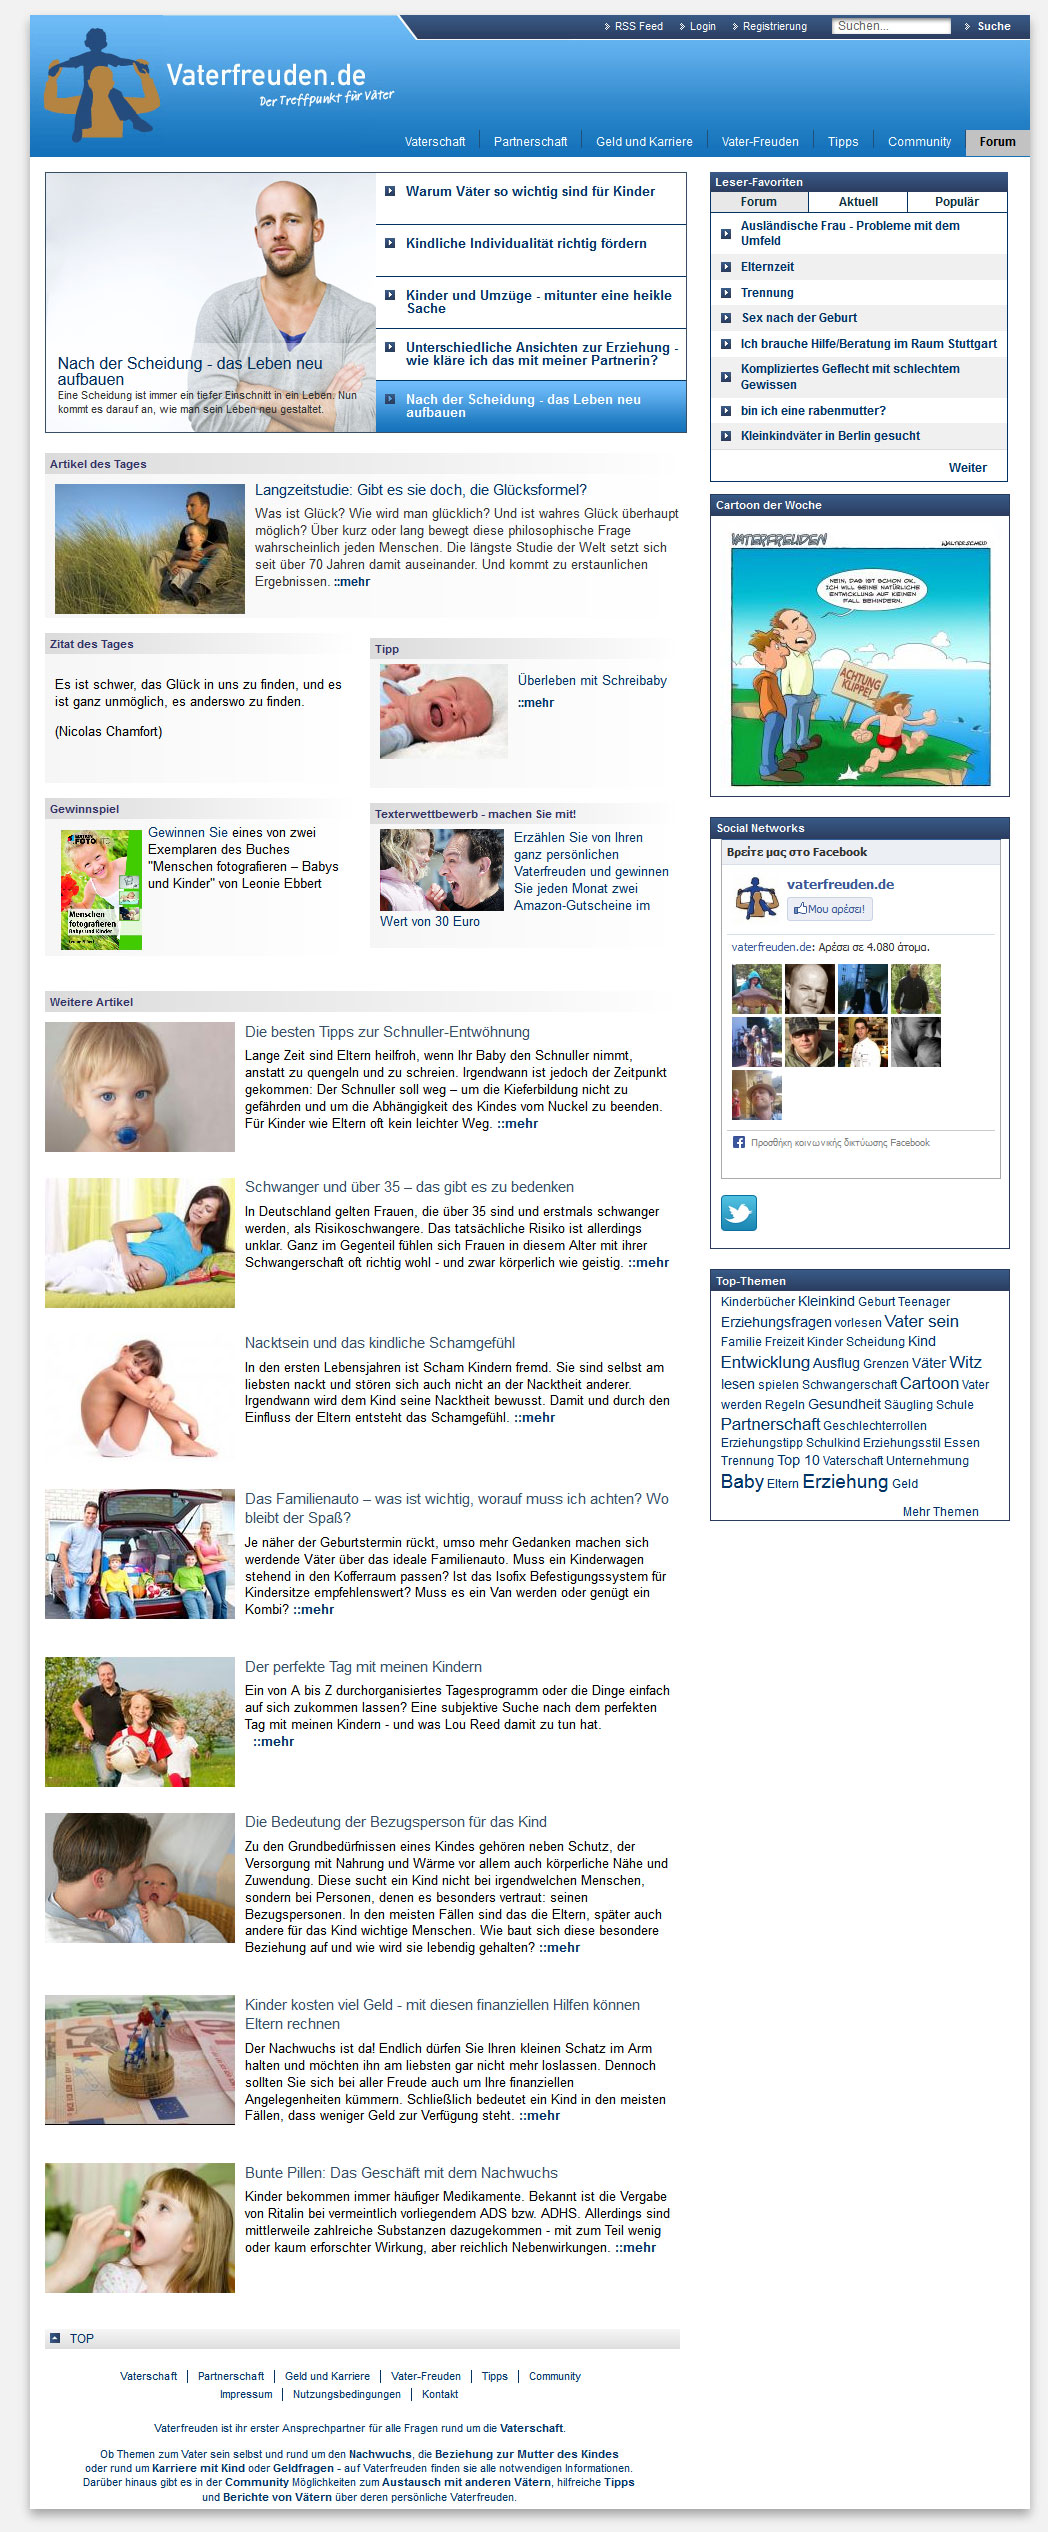 Vaterfreuden Online Community For Fathers Konordo Web Services